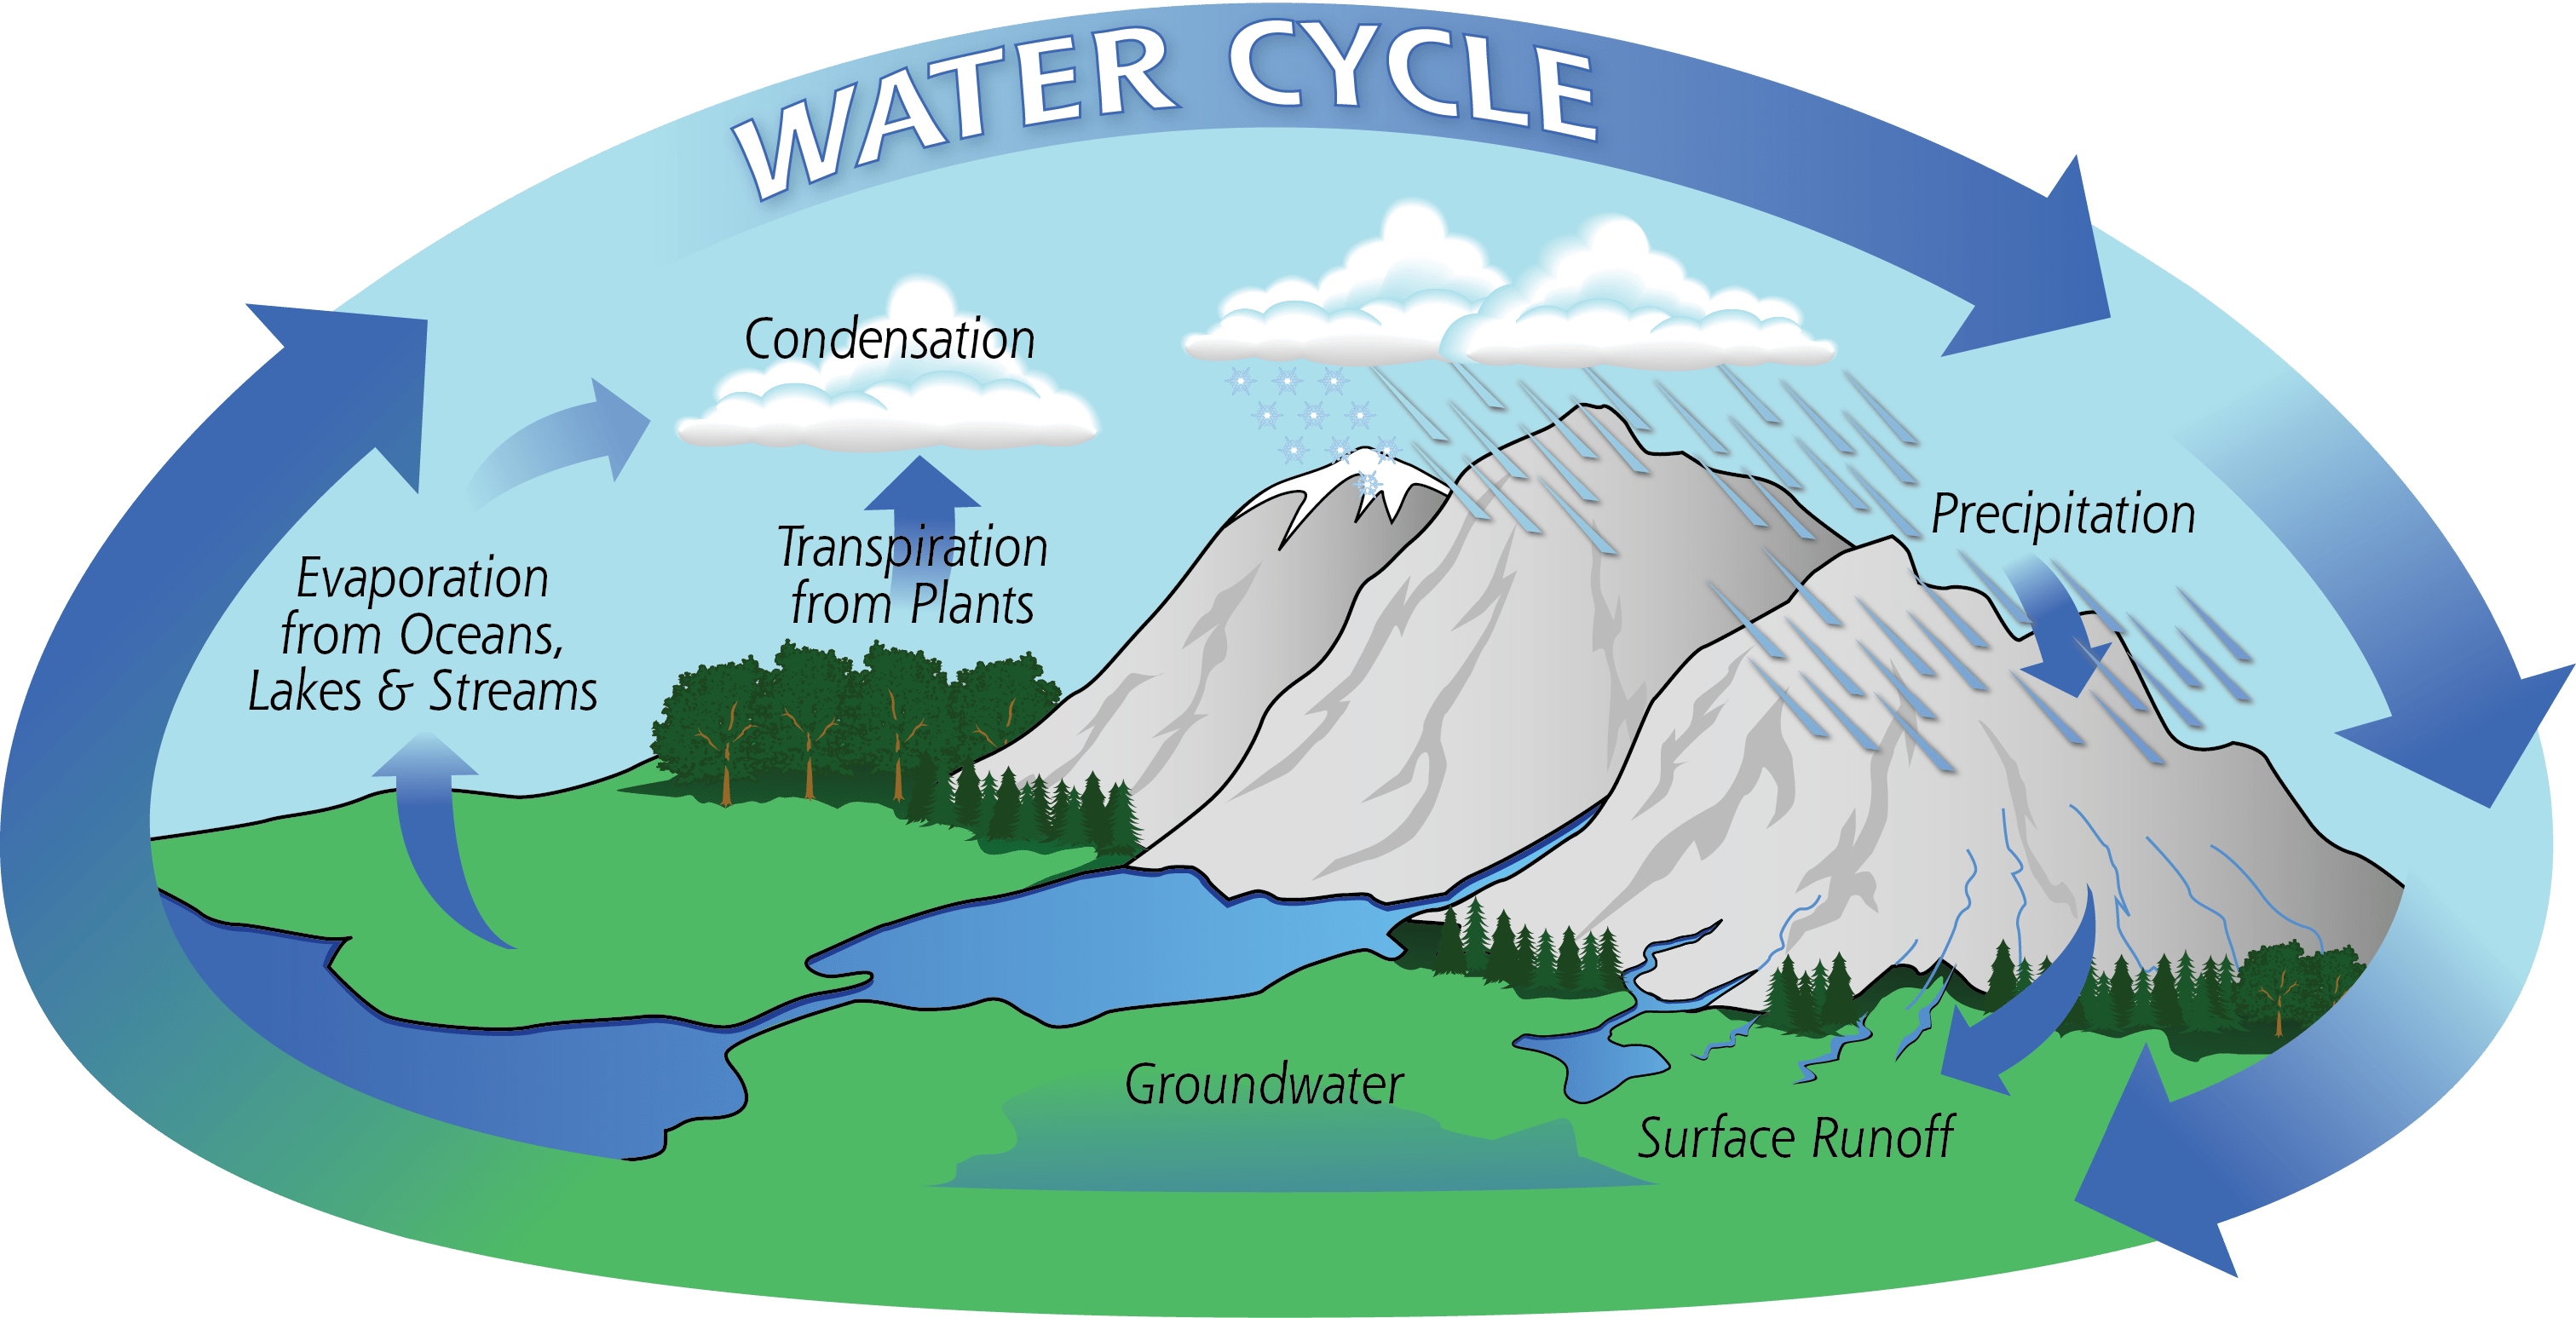 water cycle diagram with questions orbital for arsenic the precipitation education of showing evaporation condensation and